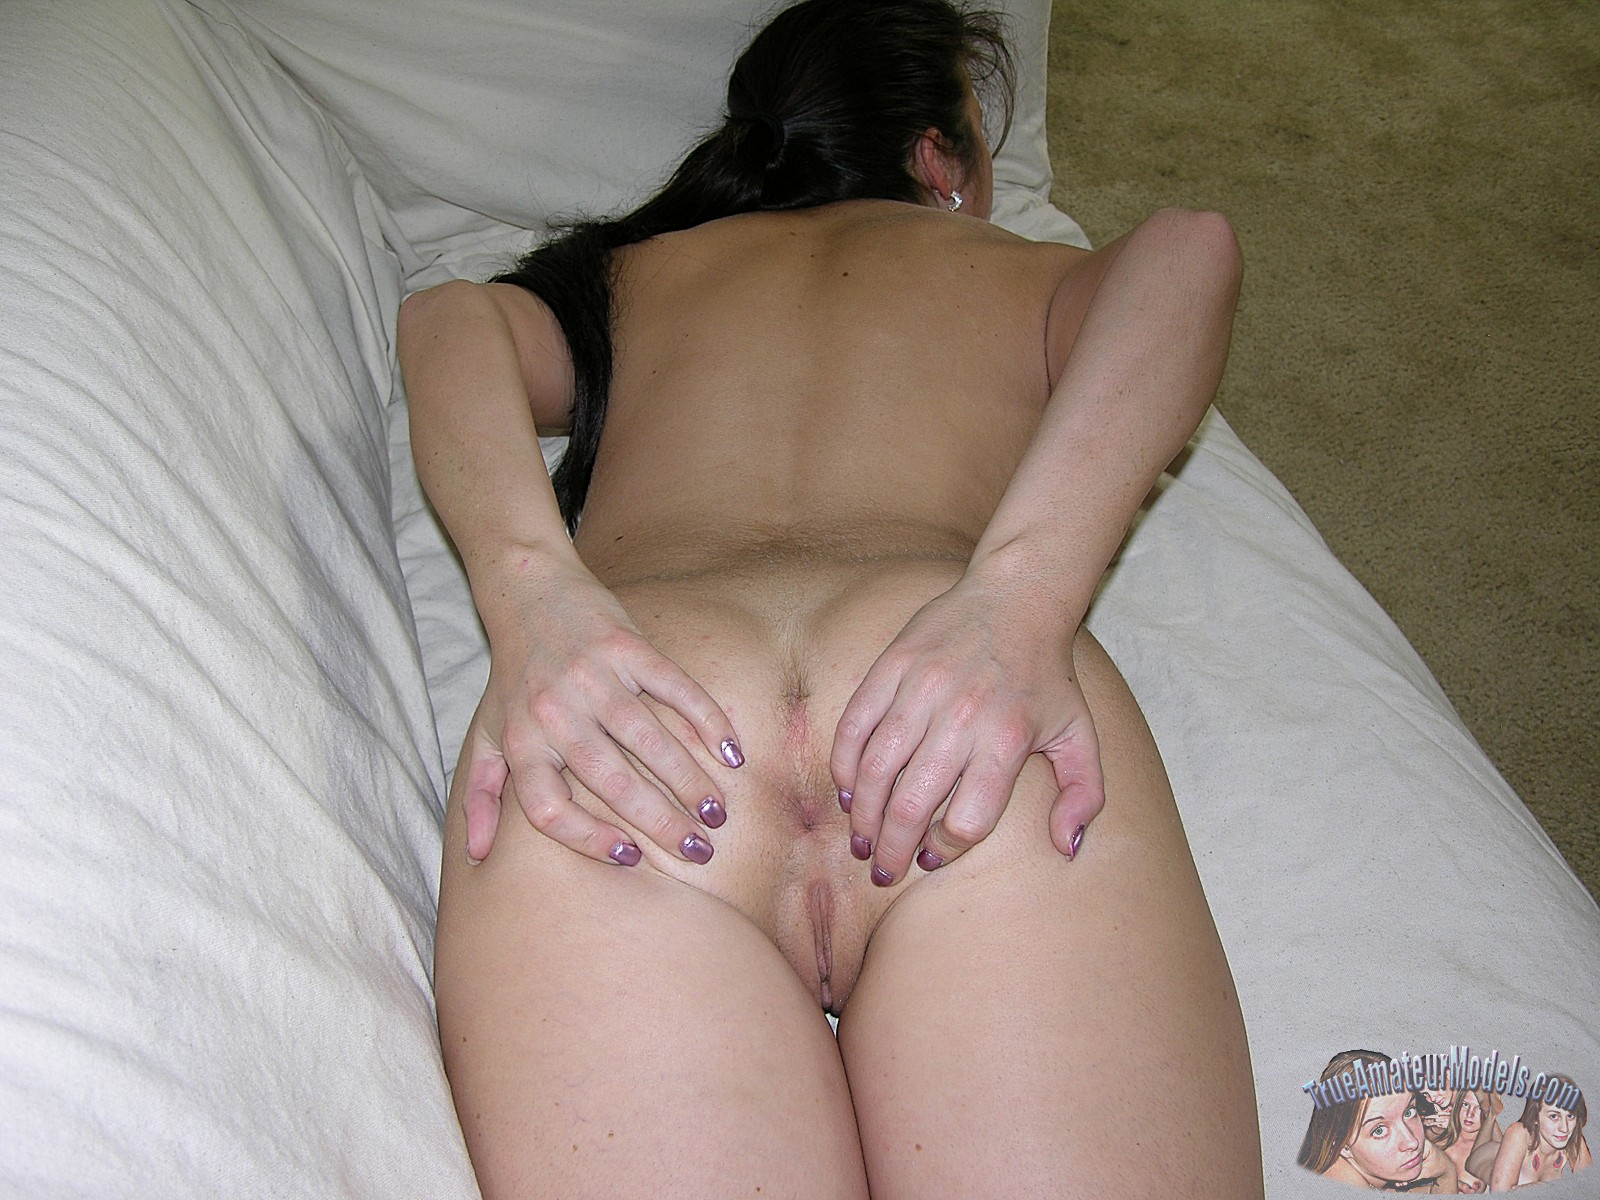 amateur nude girl ass